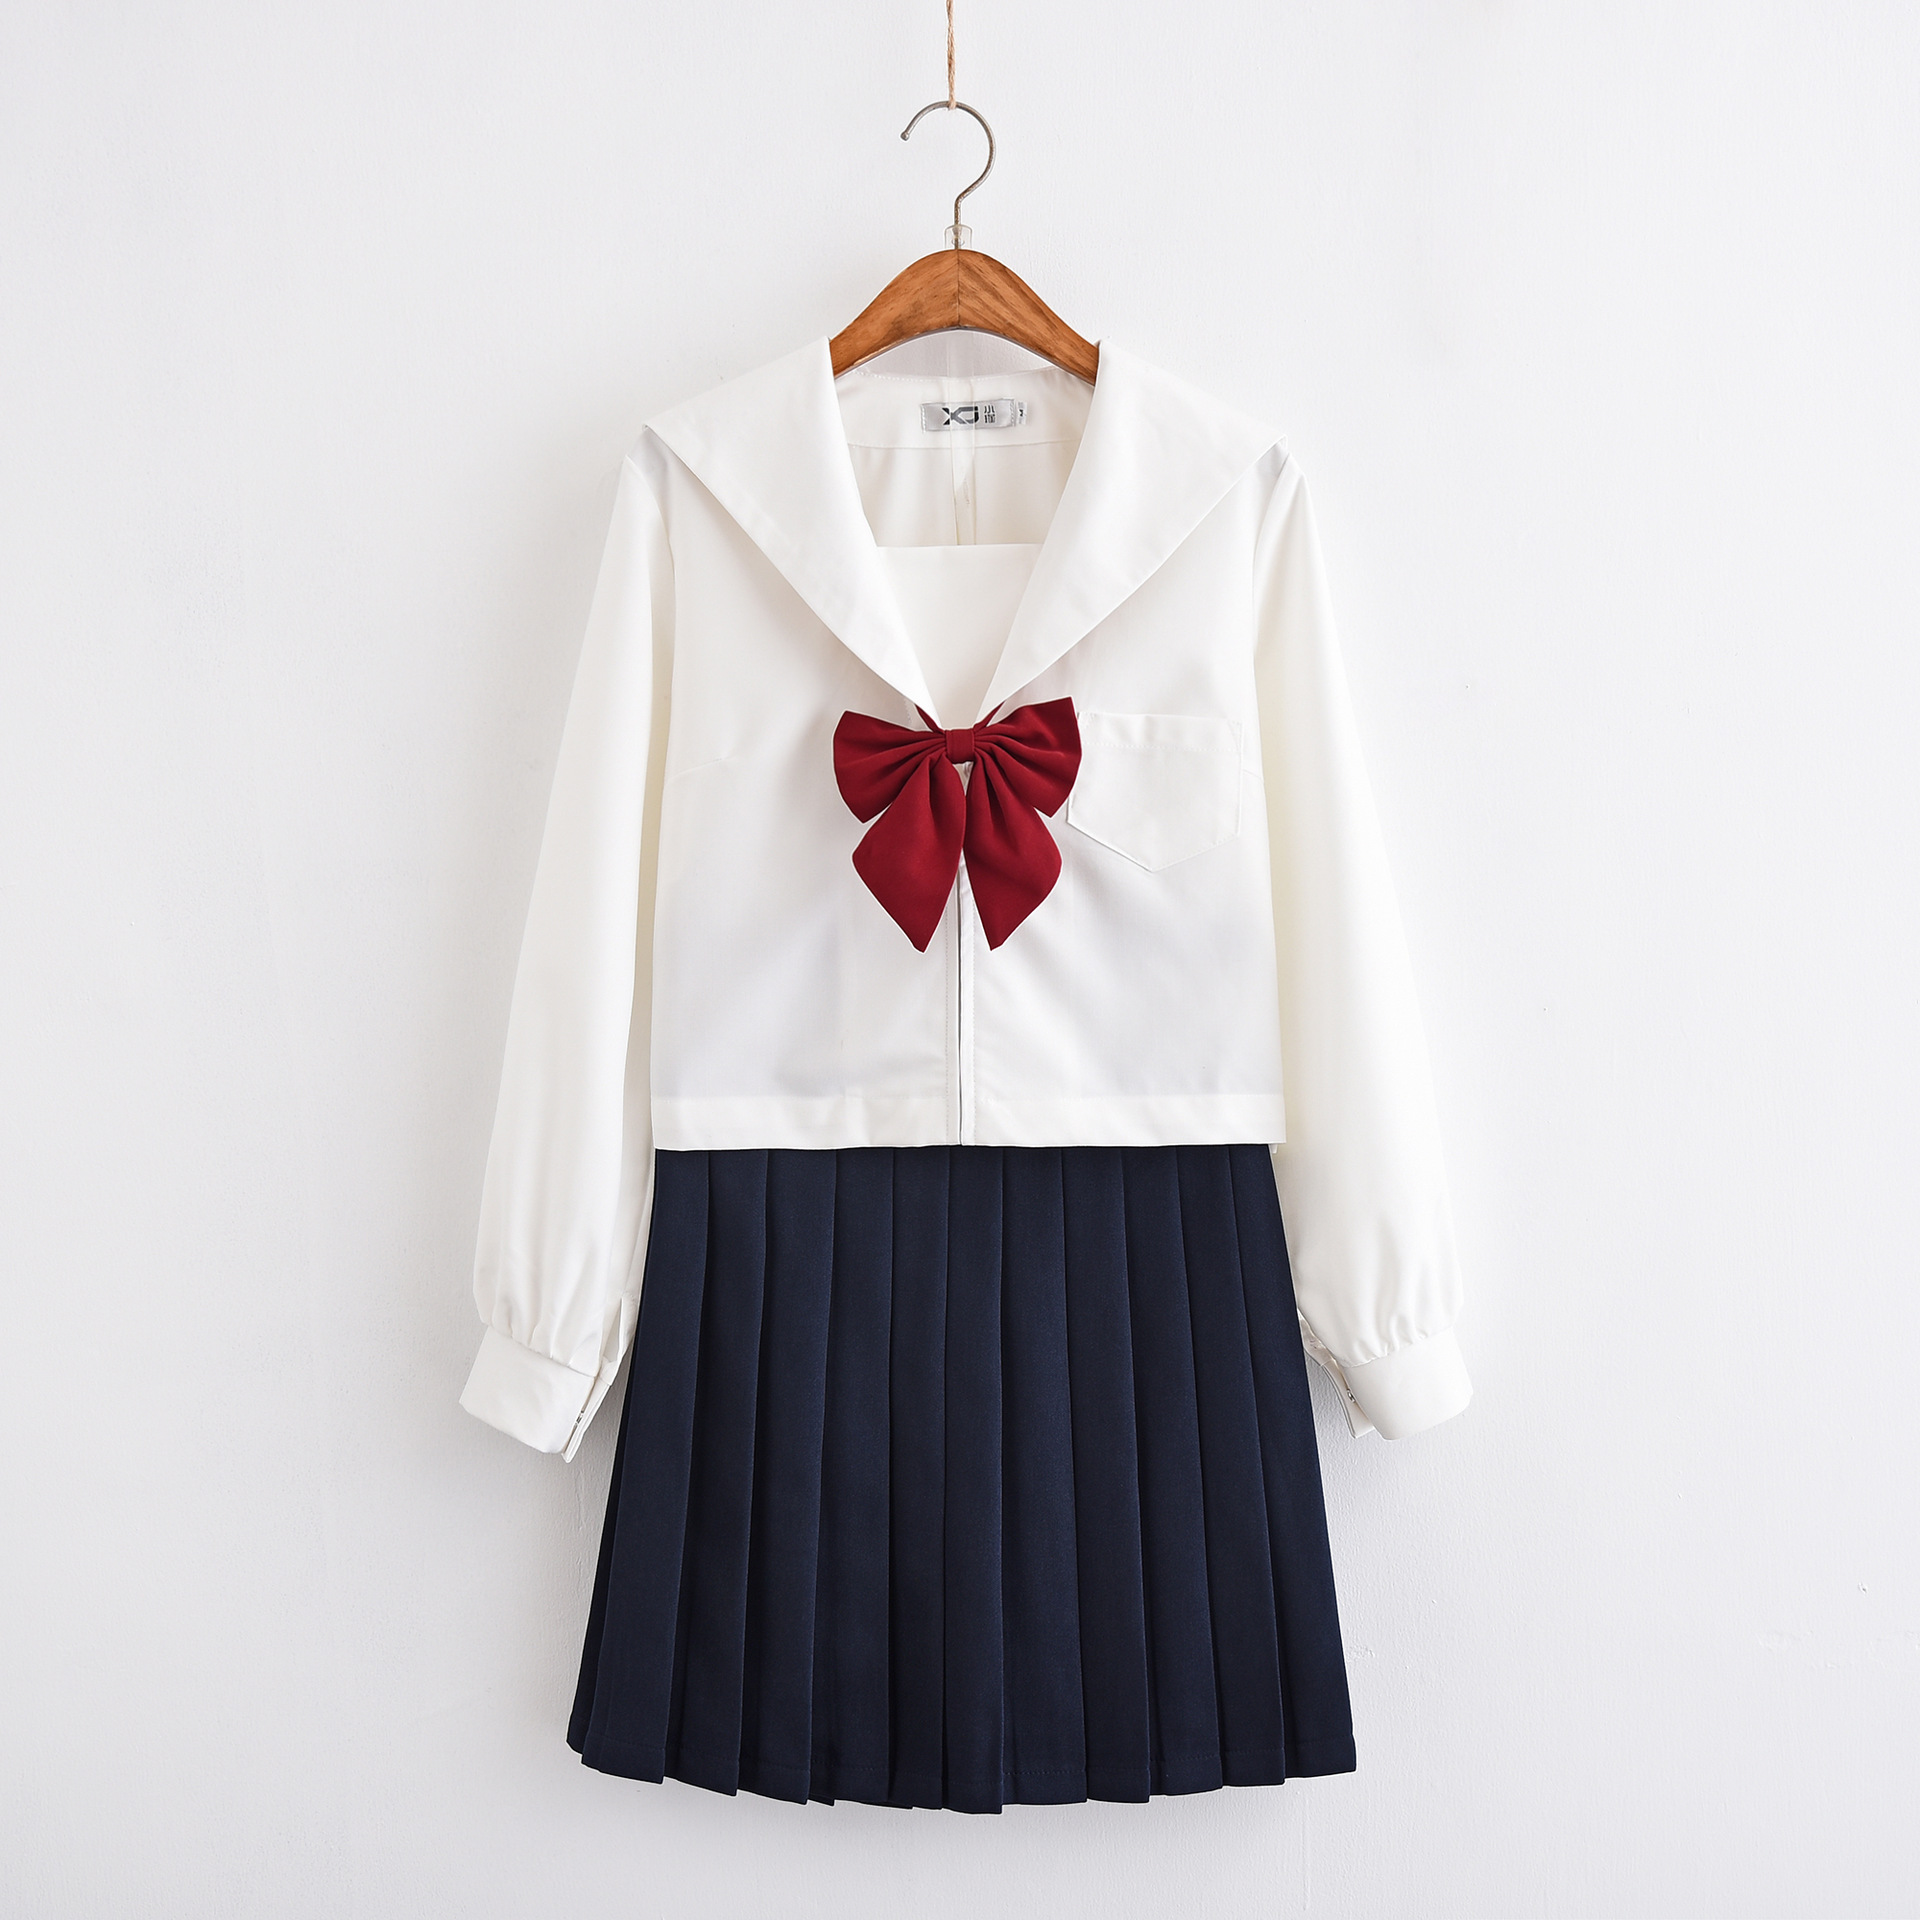 2019 Japanese School Uniforms For Girls Cute Long-length Sailor Tops Pleated Skirt Full Sets Cosplay JK Costume Uniforme Japones